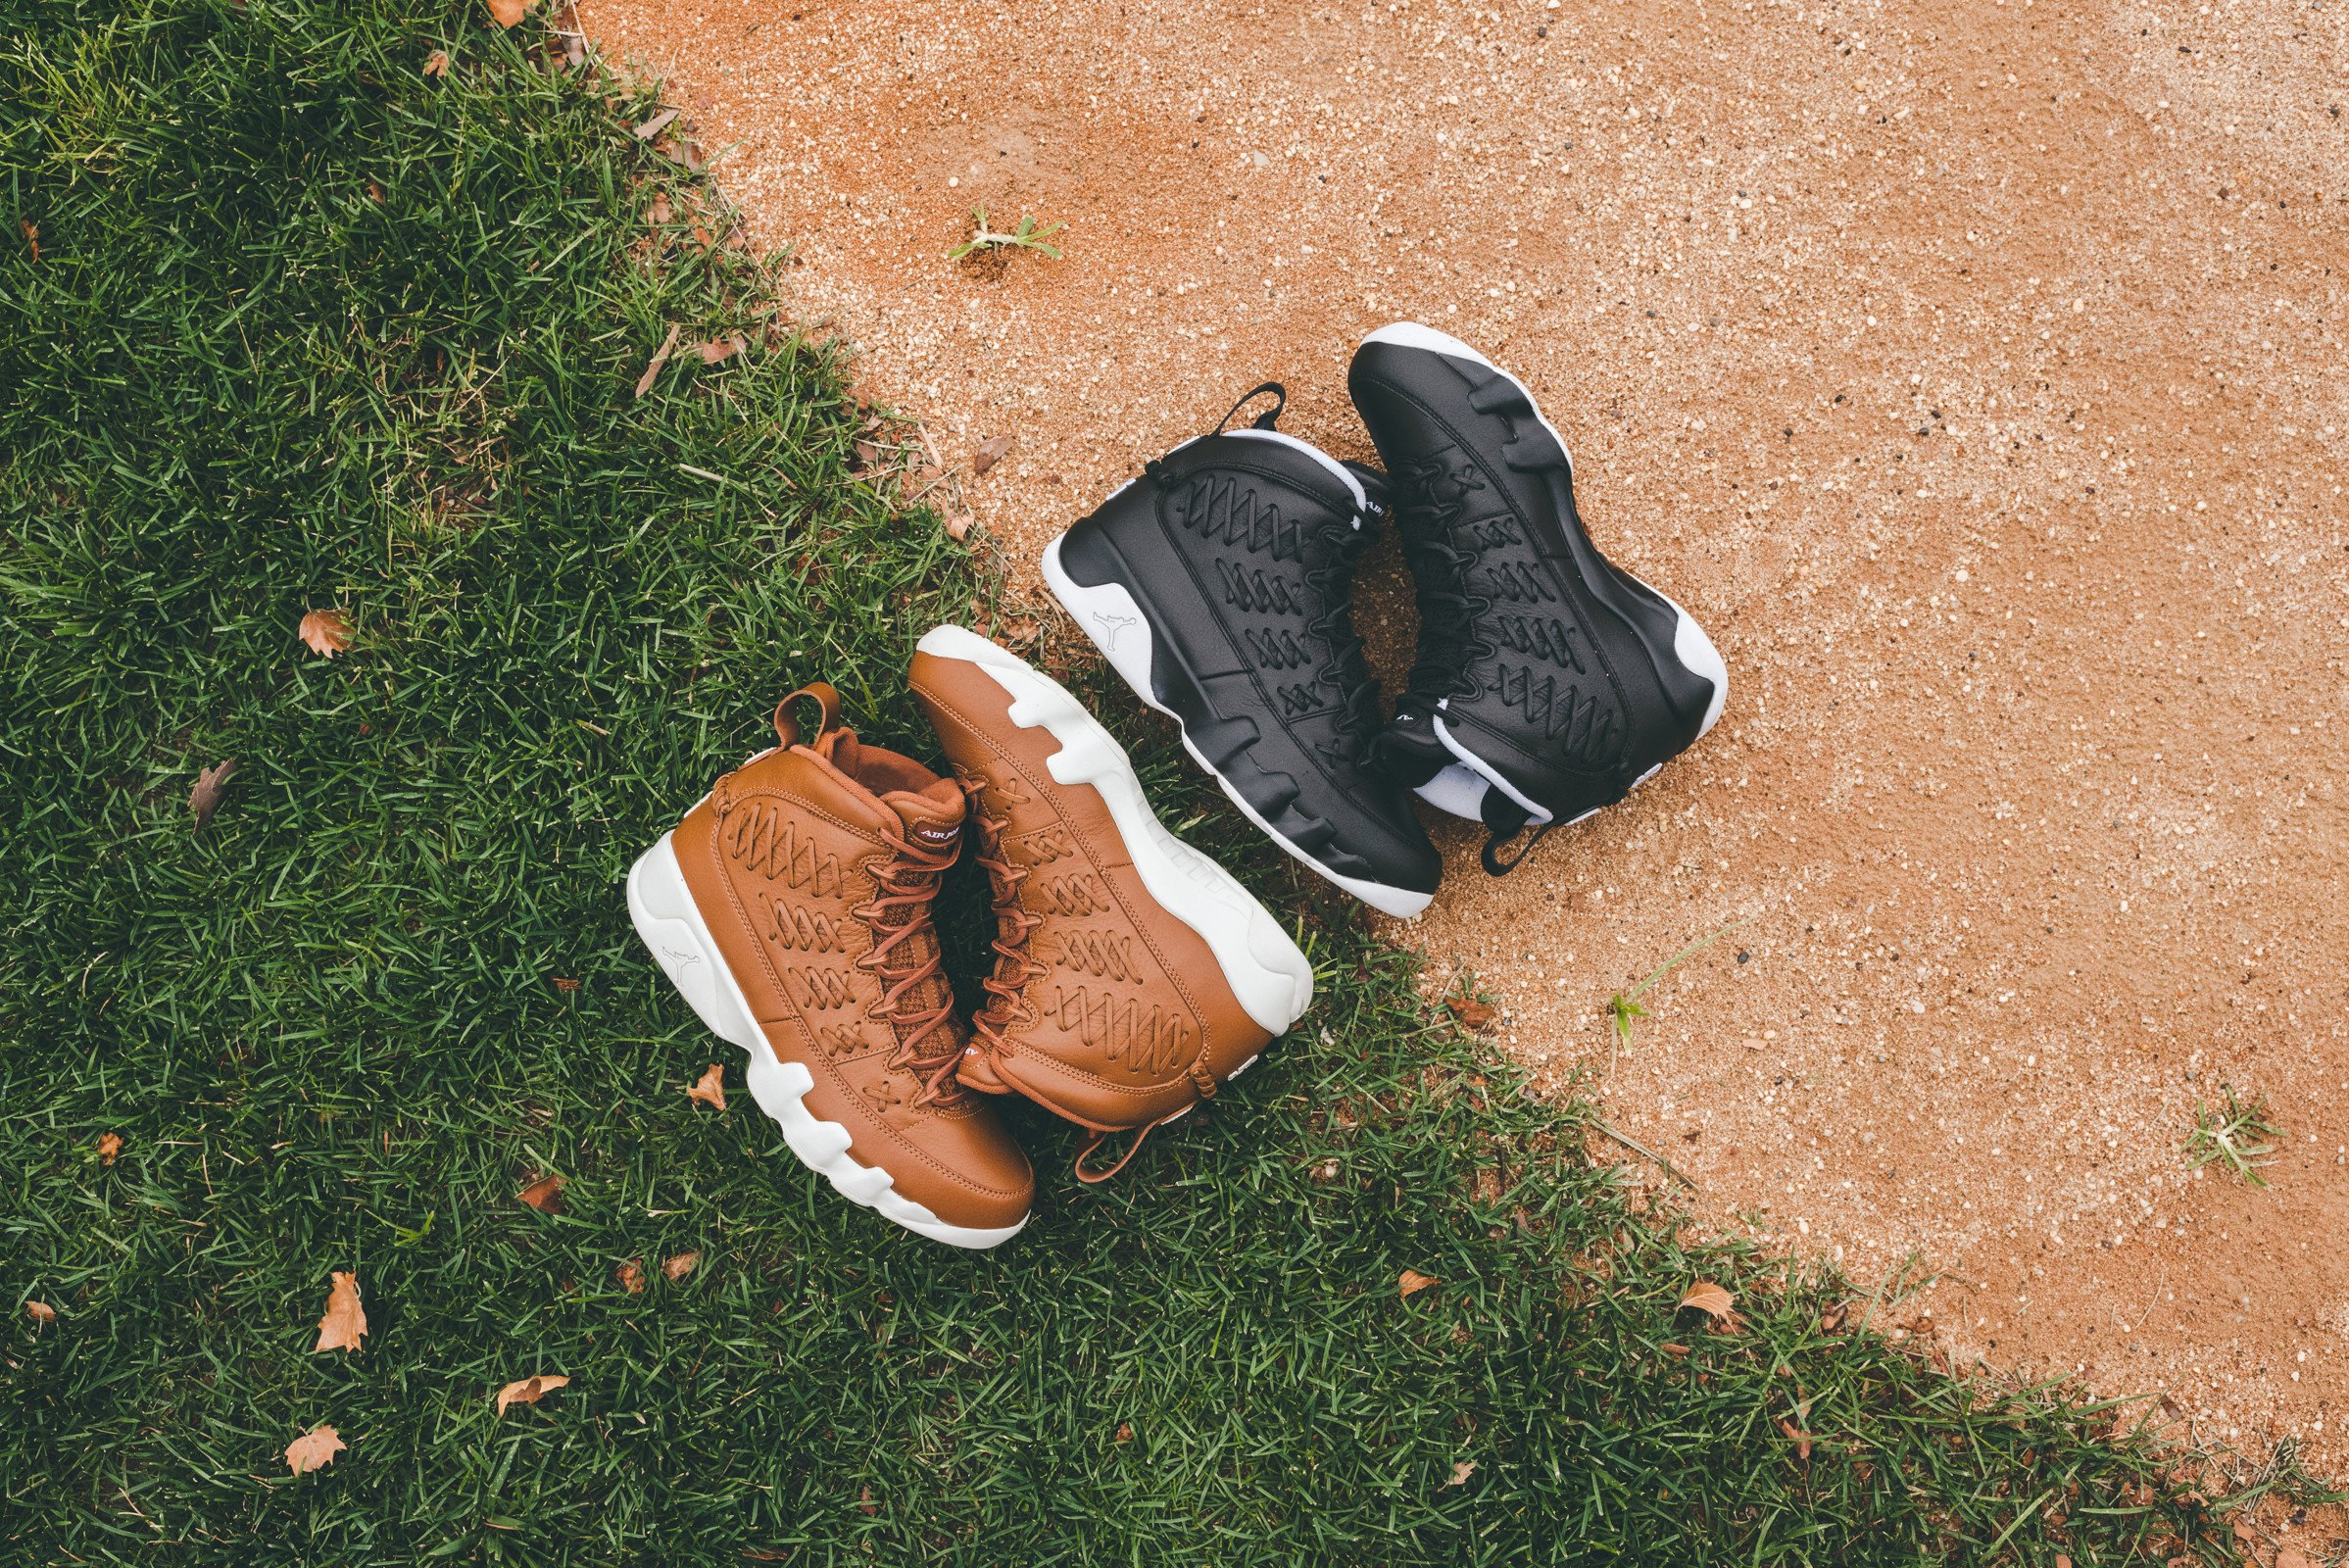 719a8ea0b3f Air Jordan 9 Retro Pinnacle Pack - Brown or Black